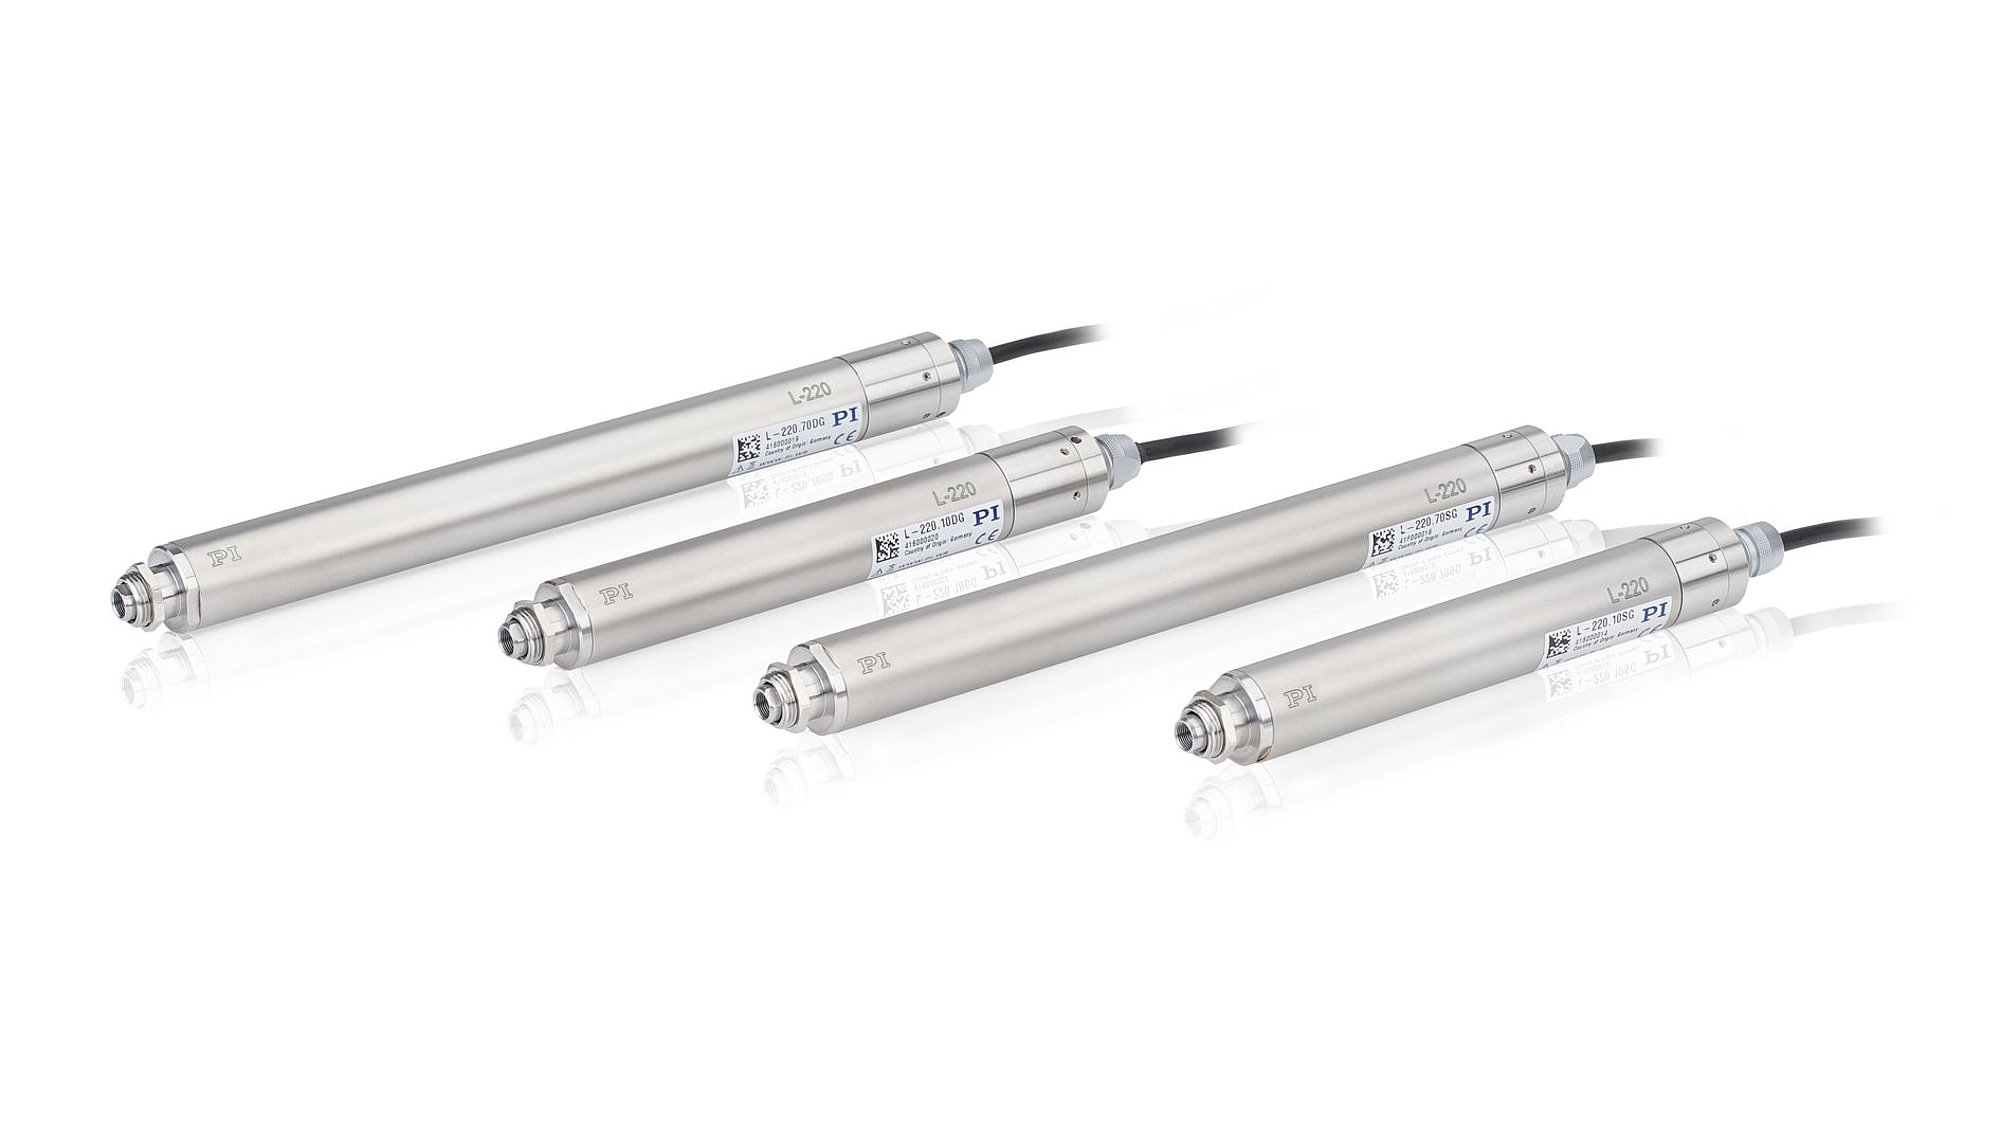 L 220 High Resolution Linear Actuator